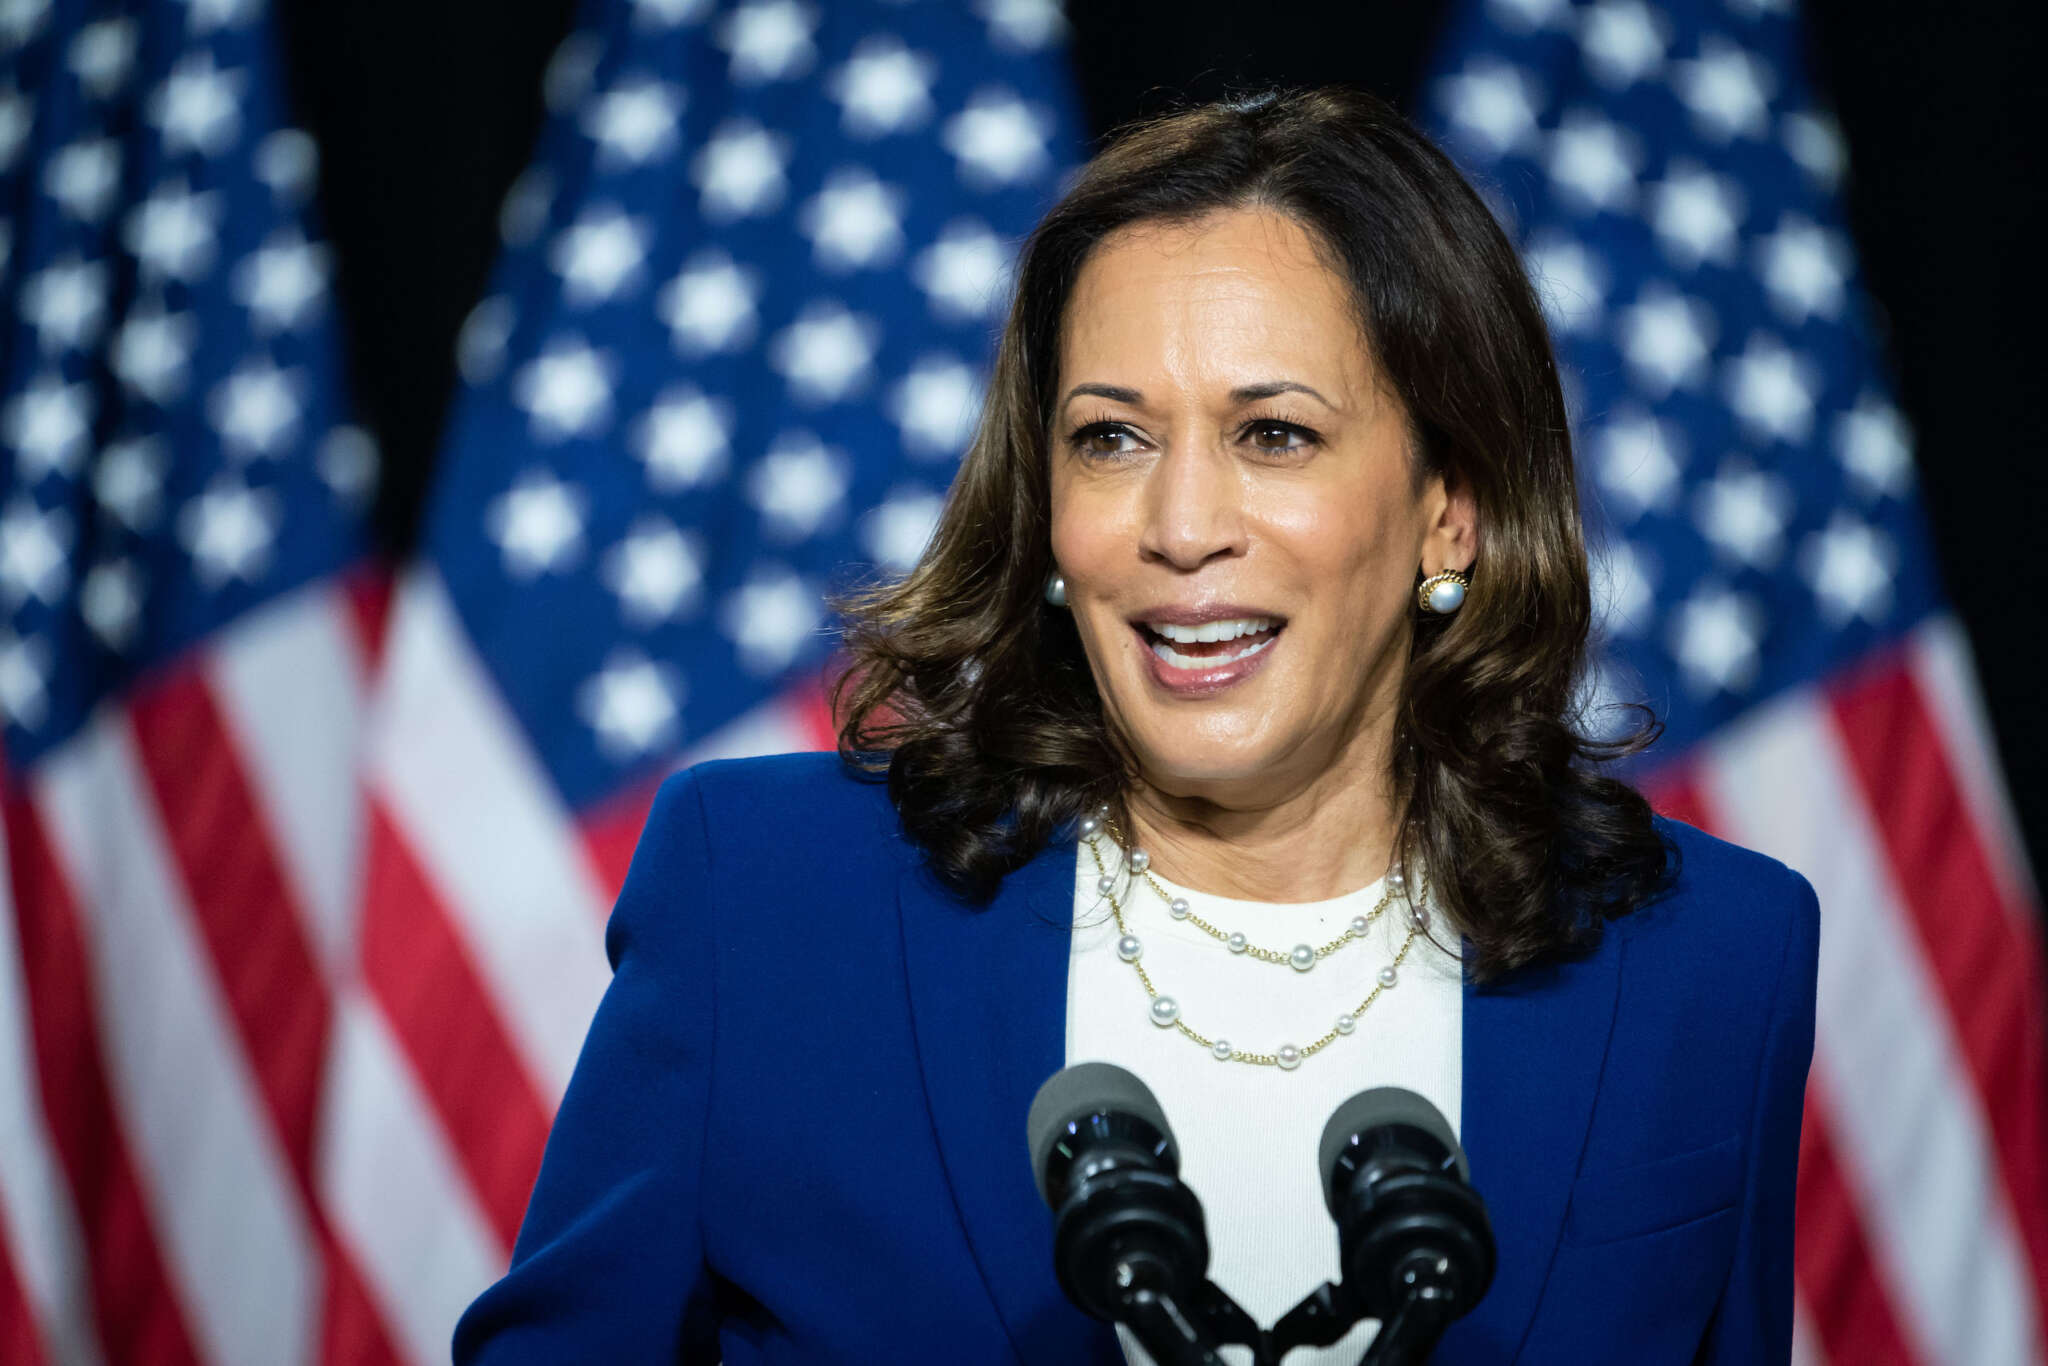 kamala-harris-insists-that-you-dont-meet-hate-with-hate-while-discussing-the-deep-divide-in-america